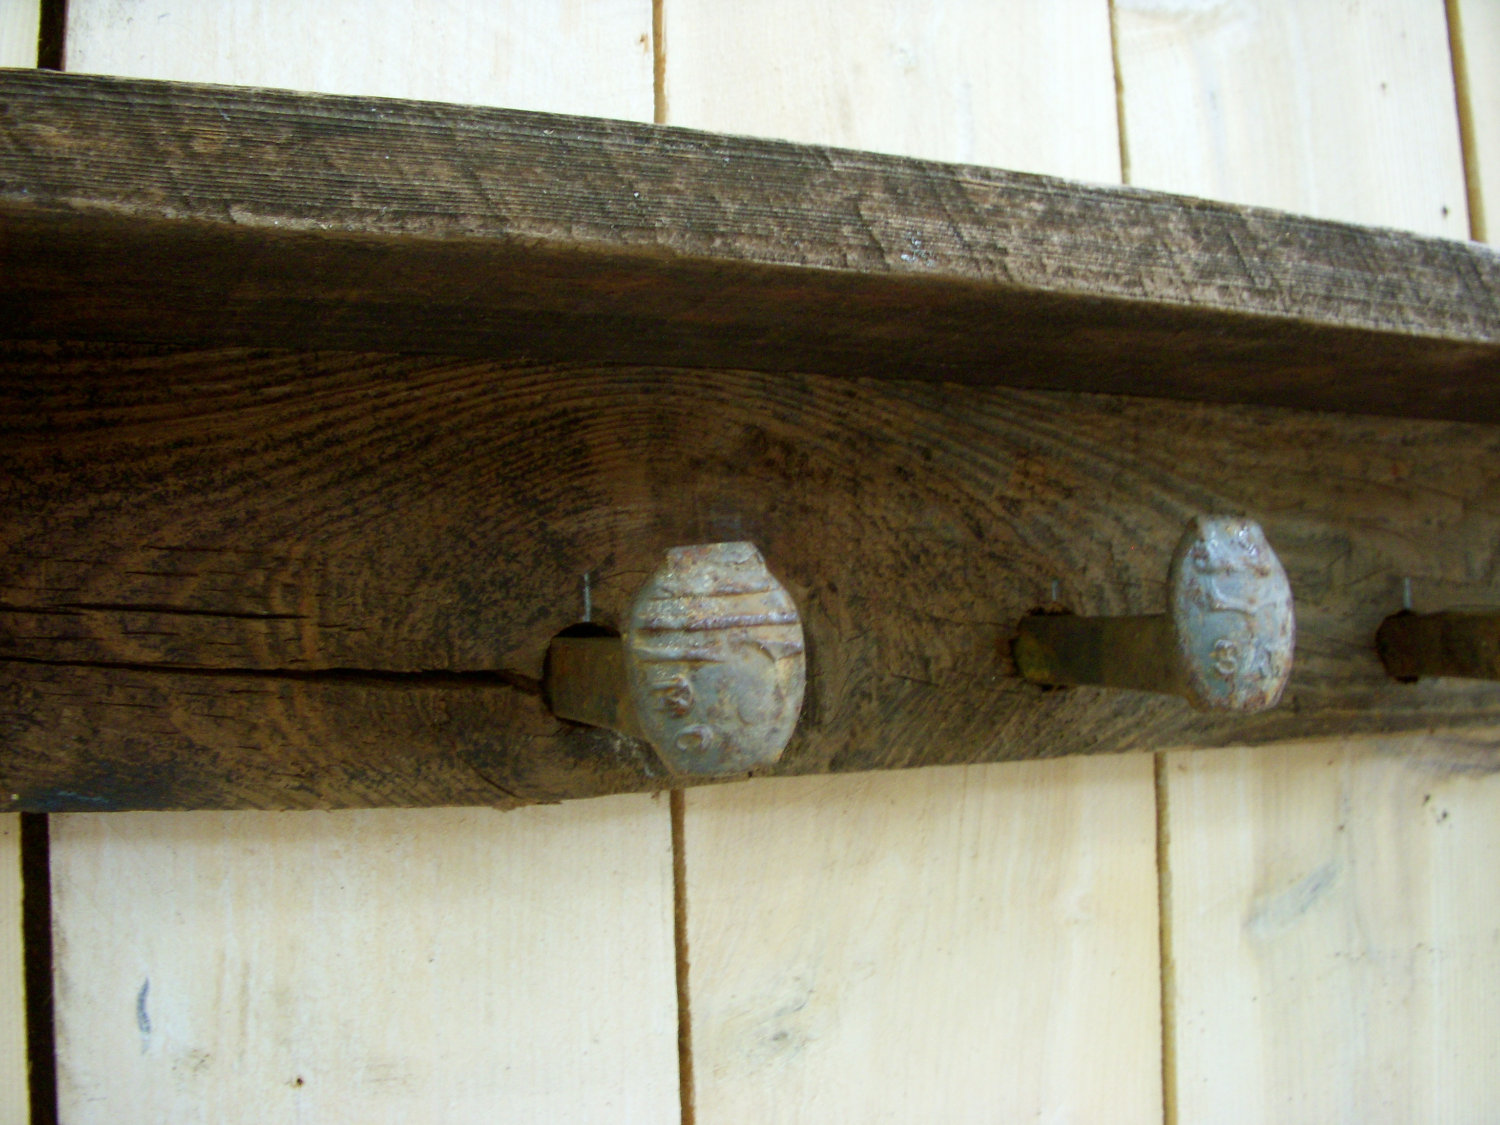 Wood Wall Coat Rack Railroad Spike Hooks Rustic Reclaimed Wood Decor 32 Barn Wood Wall Decor Barn Wood Reclaimed Barn Wood